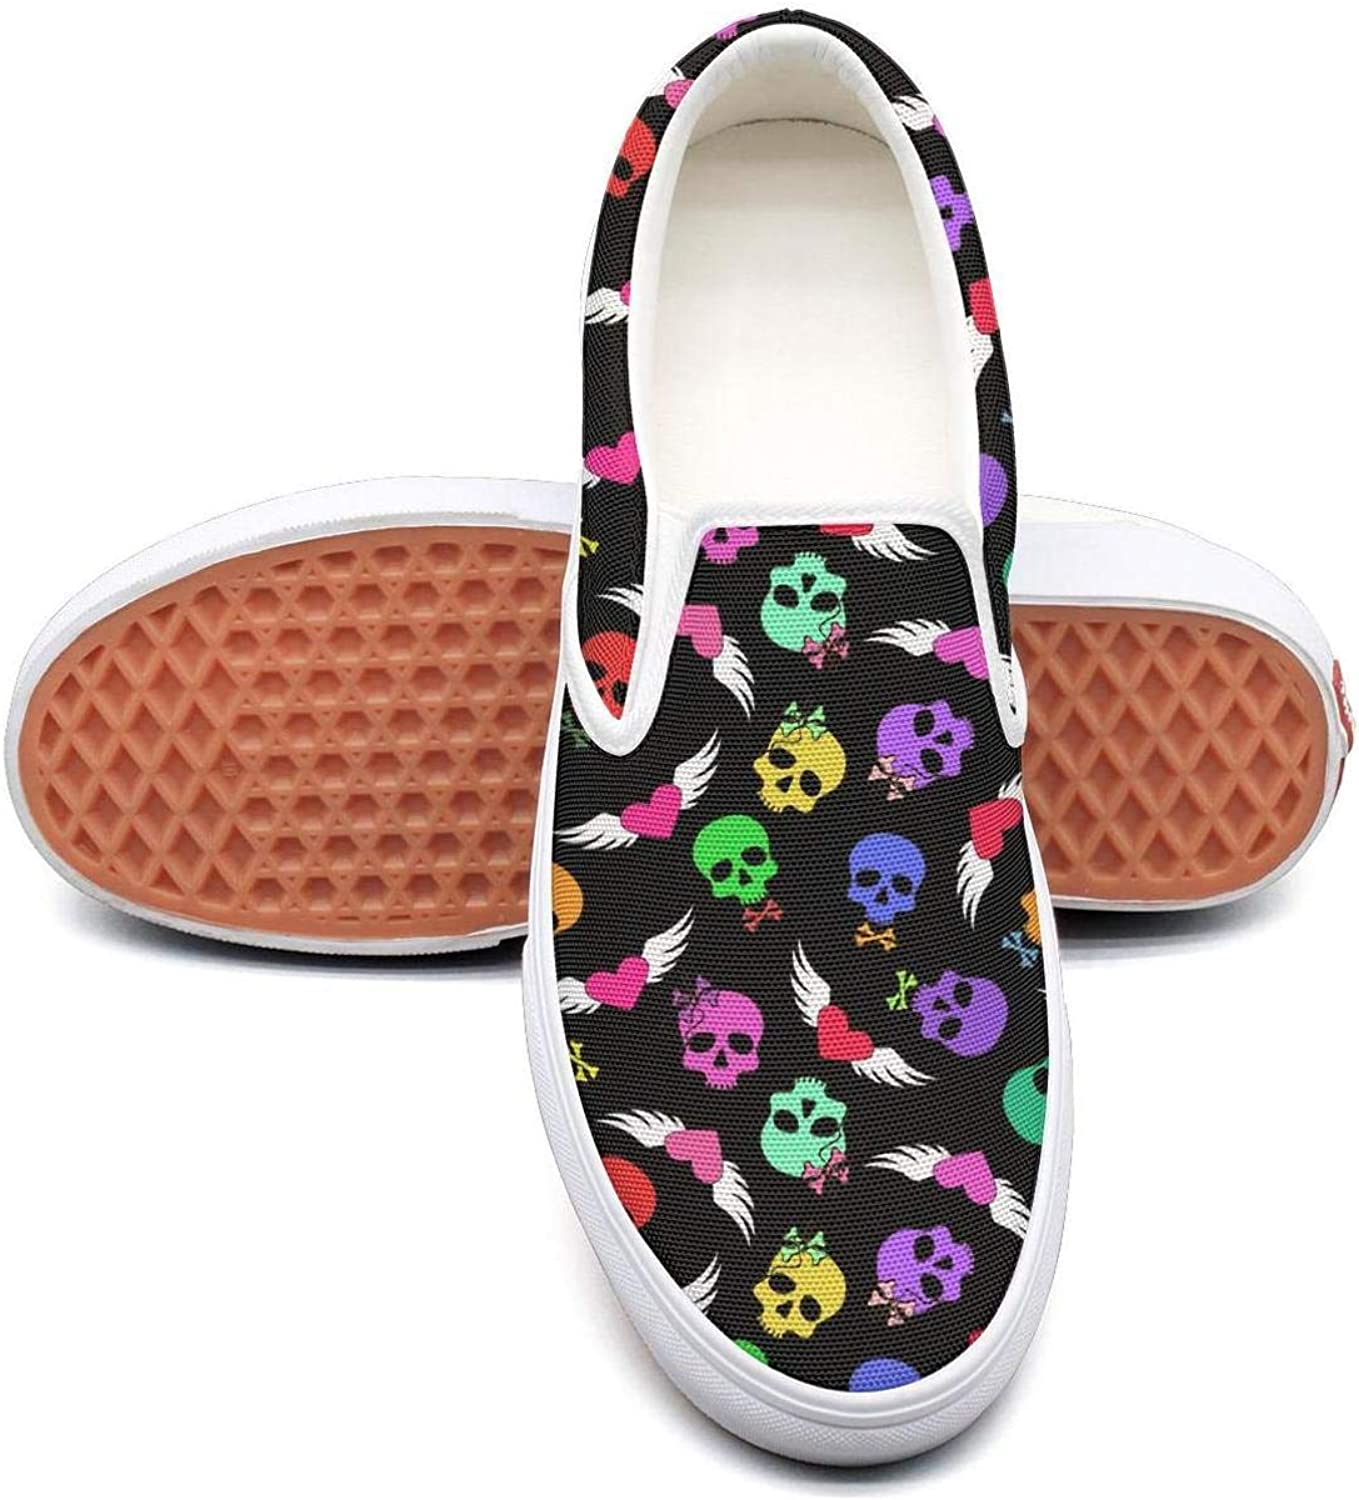 Skull Art and Winged Hearts bluee Slip On Superior Comfort Loafers Canvas shoes for Women Lightweight